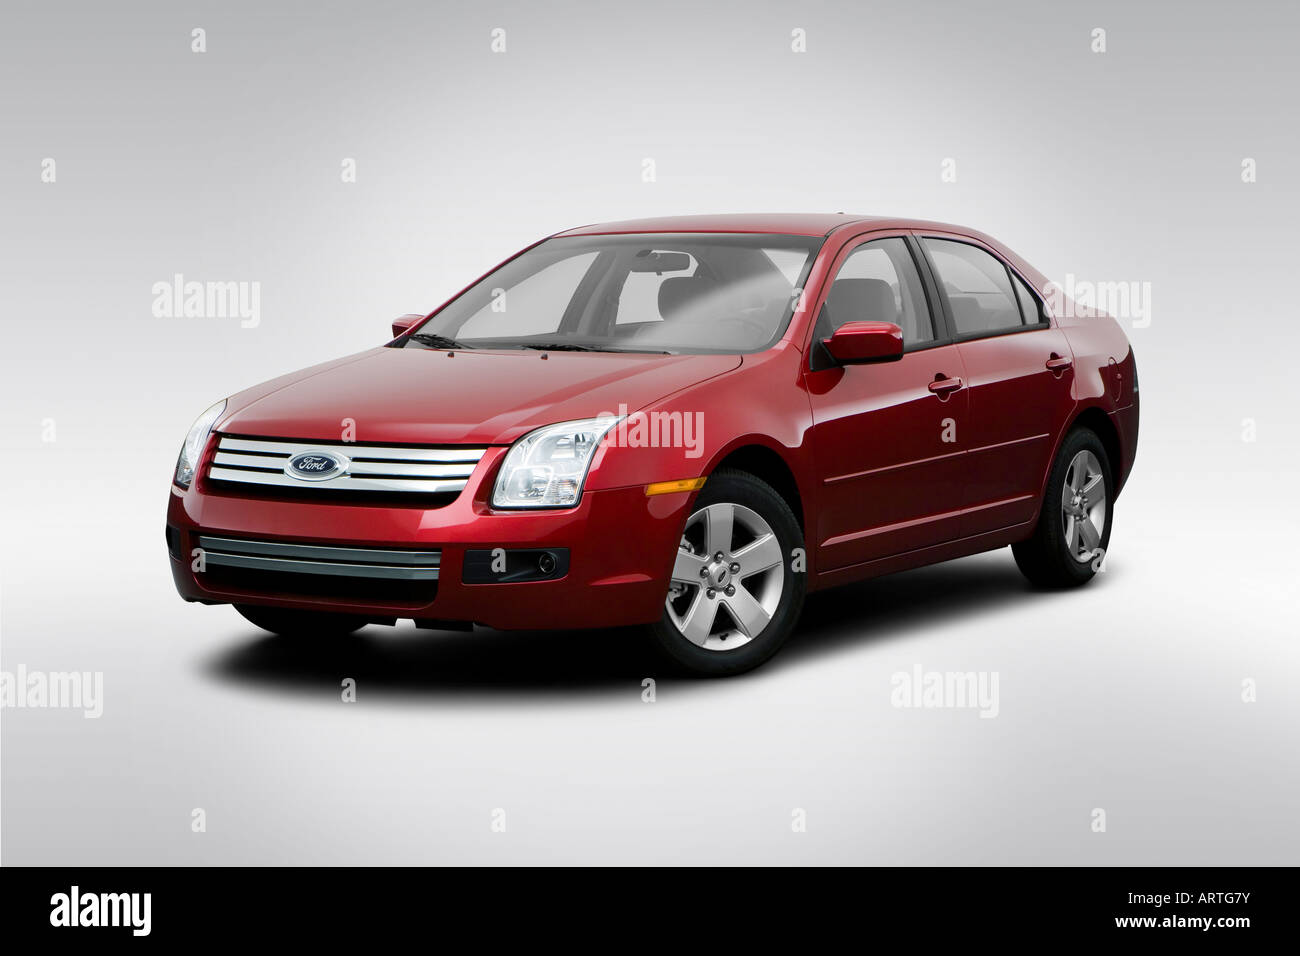 2008 ford fusion se in red front angle view stock image